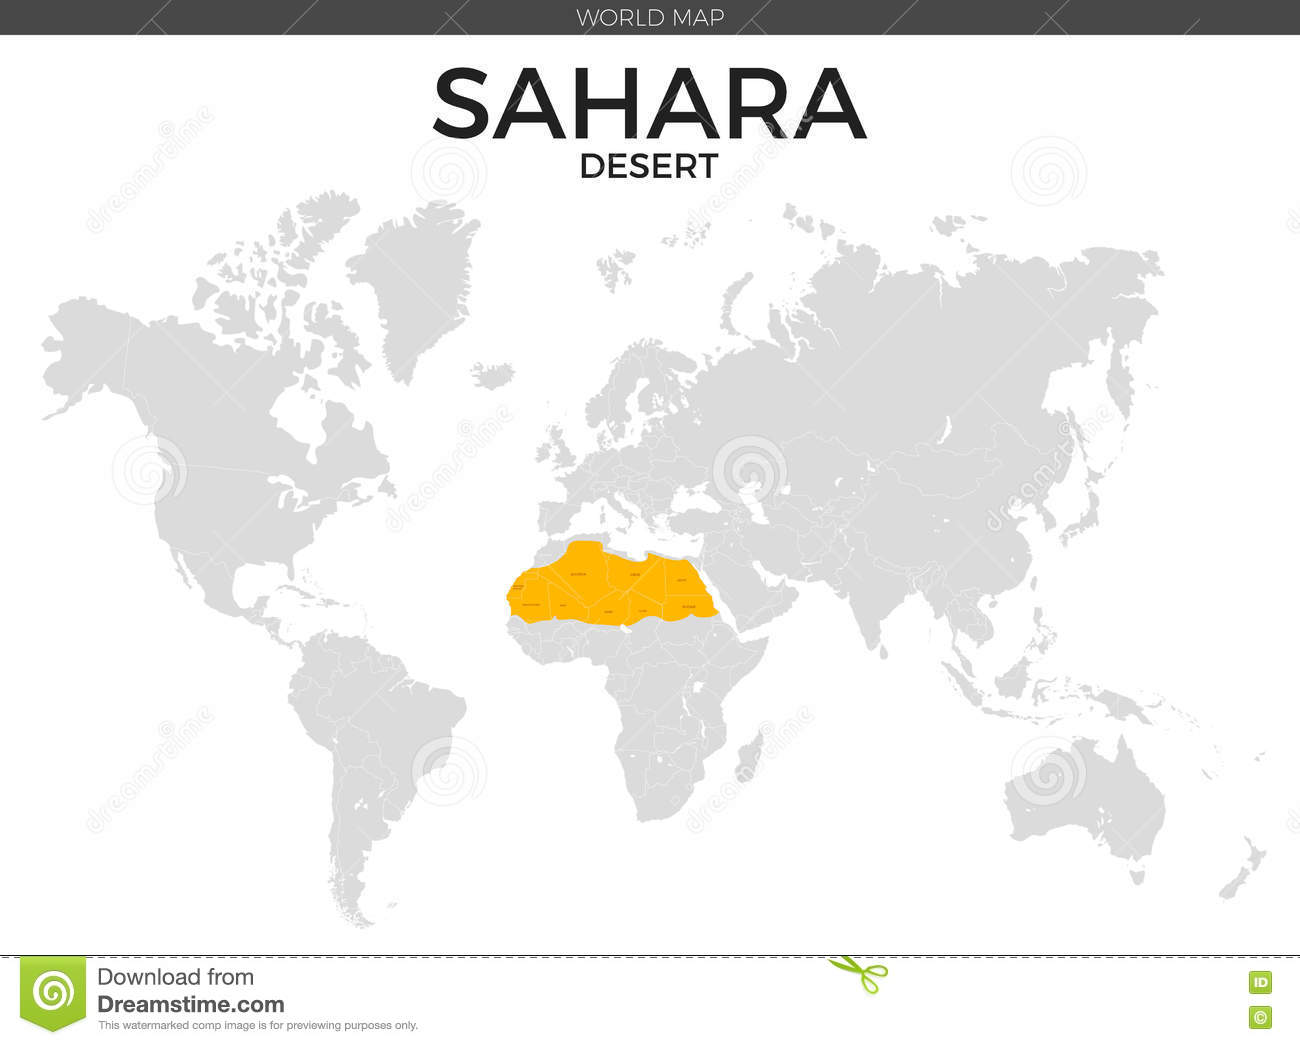 Sahara desert Location Map stock vector. Illustration of detailed ...